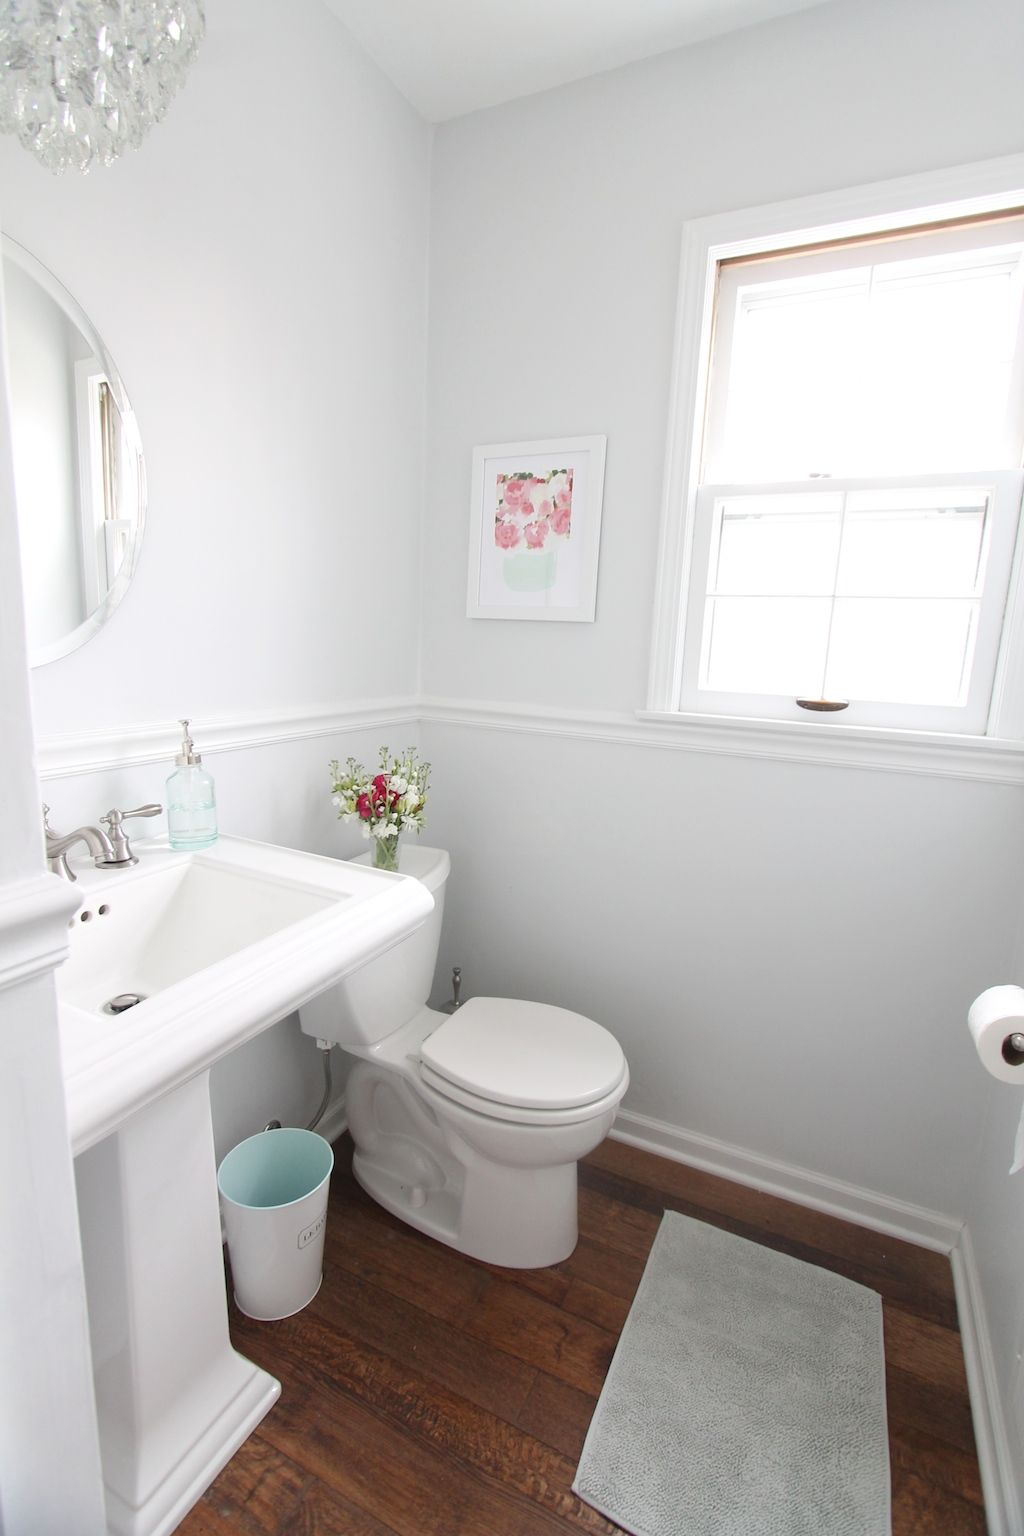 a do-it-yourself half bathroom remodel that added space & light ...